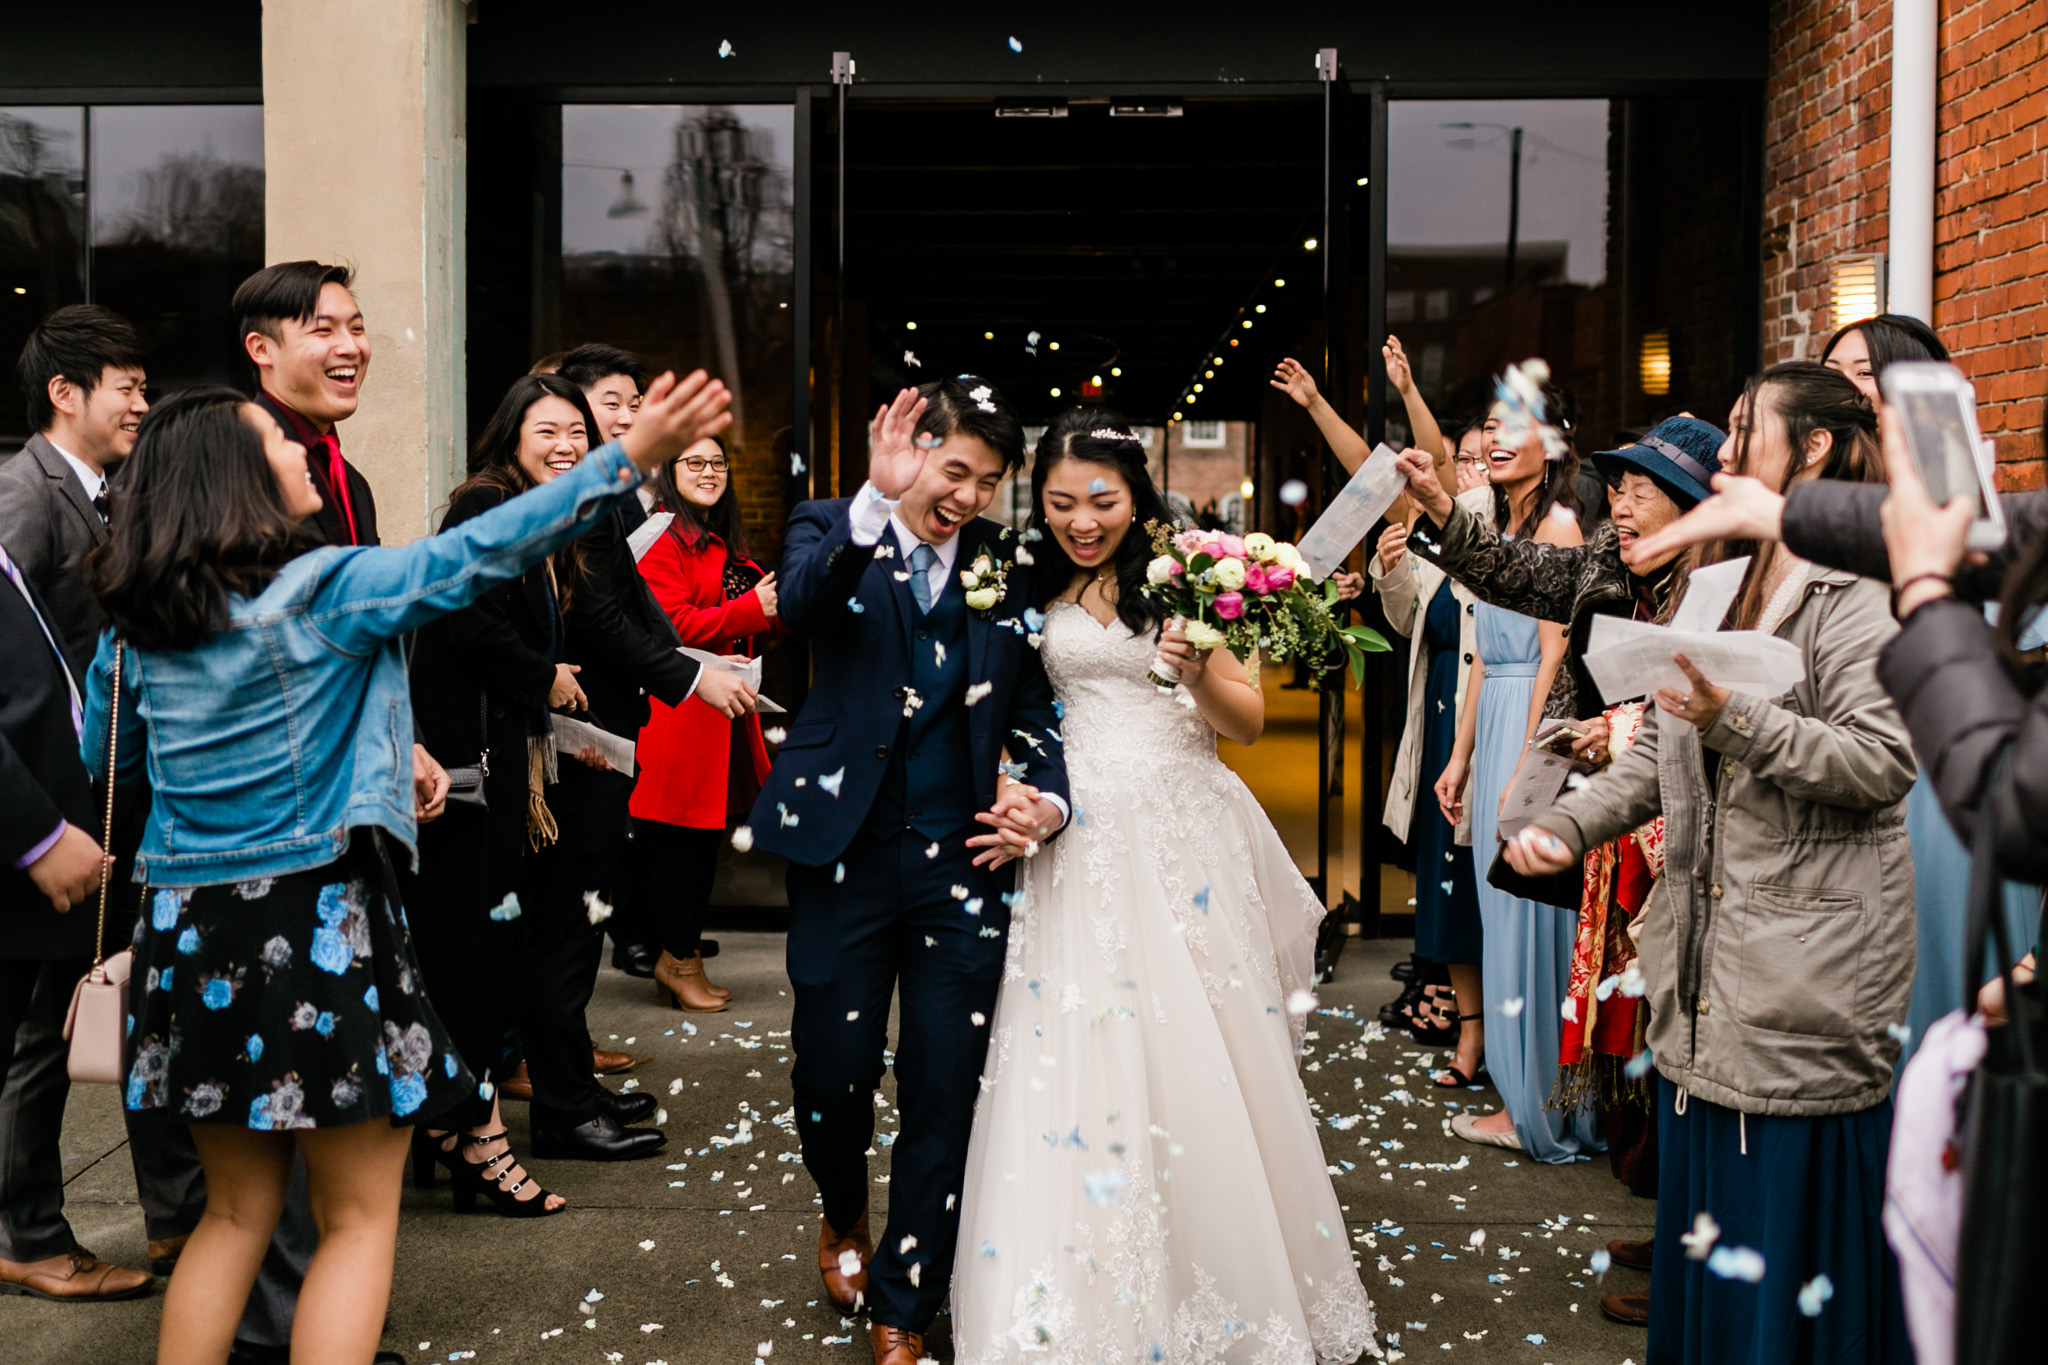 Winter Wedding at The Cotton Room | Durham Wedding Photographer | By G. Lin Photography